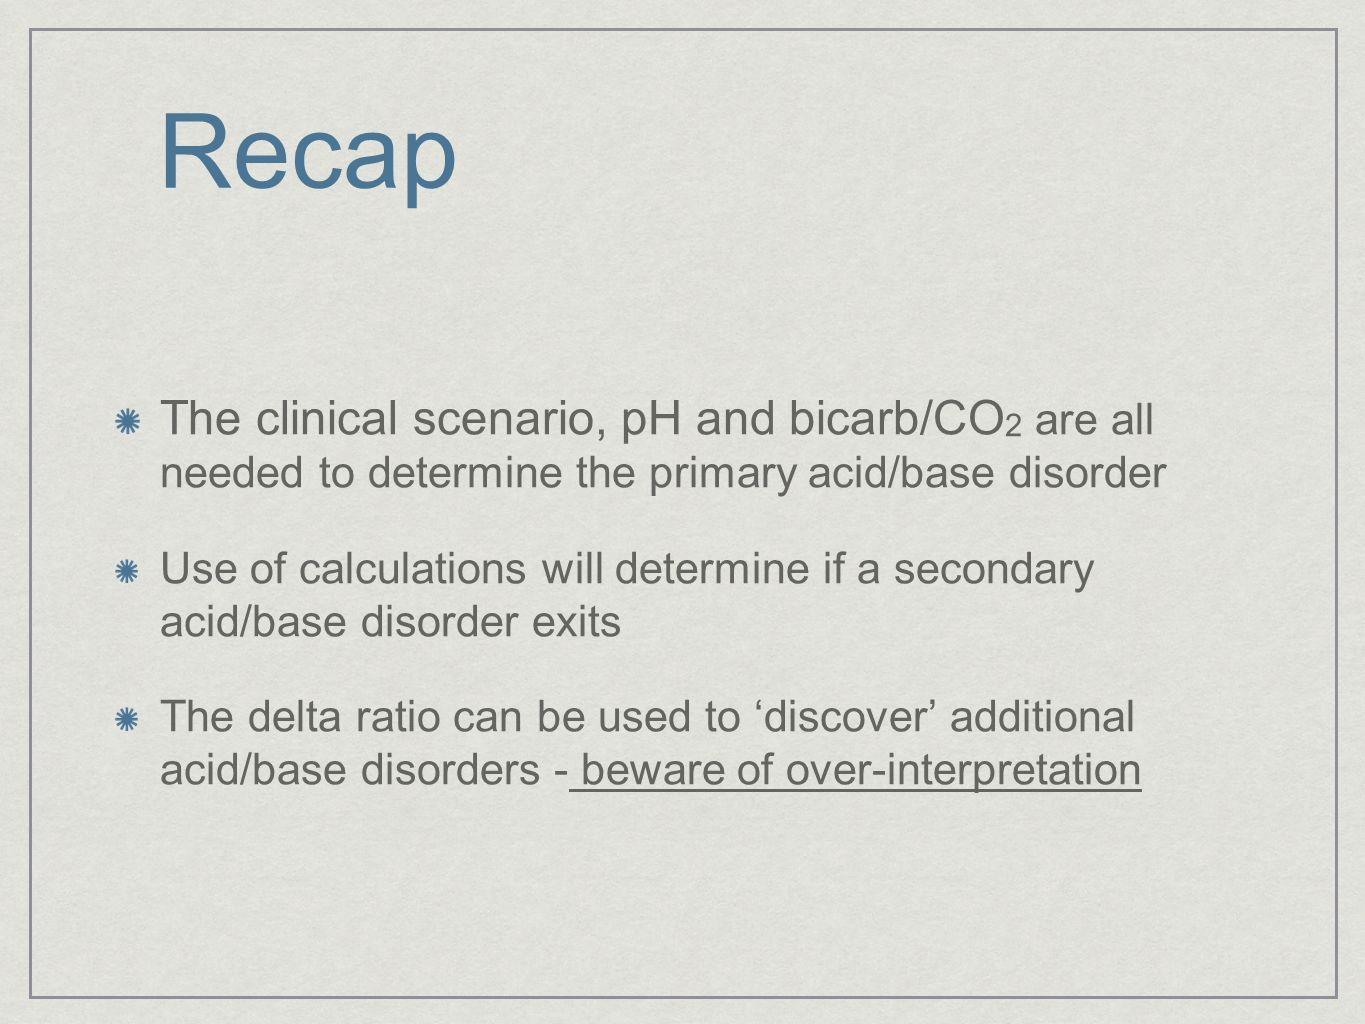 Recap The clinical scenario, pH and bicarb/CO2 are all needed to determine the primary acid/base disorder.